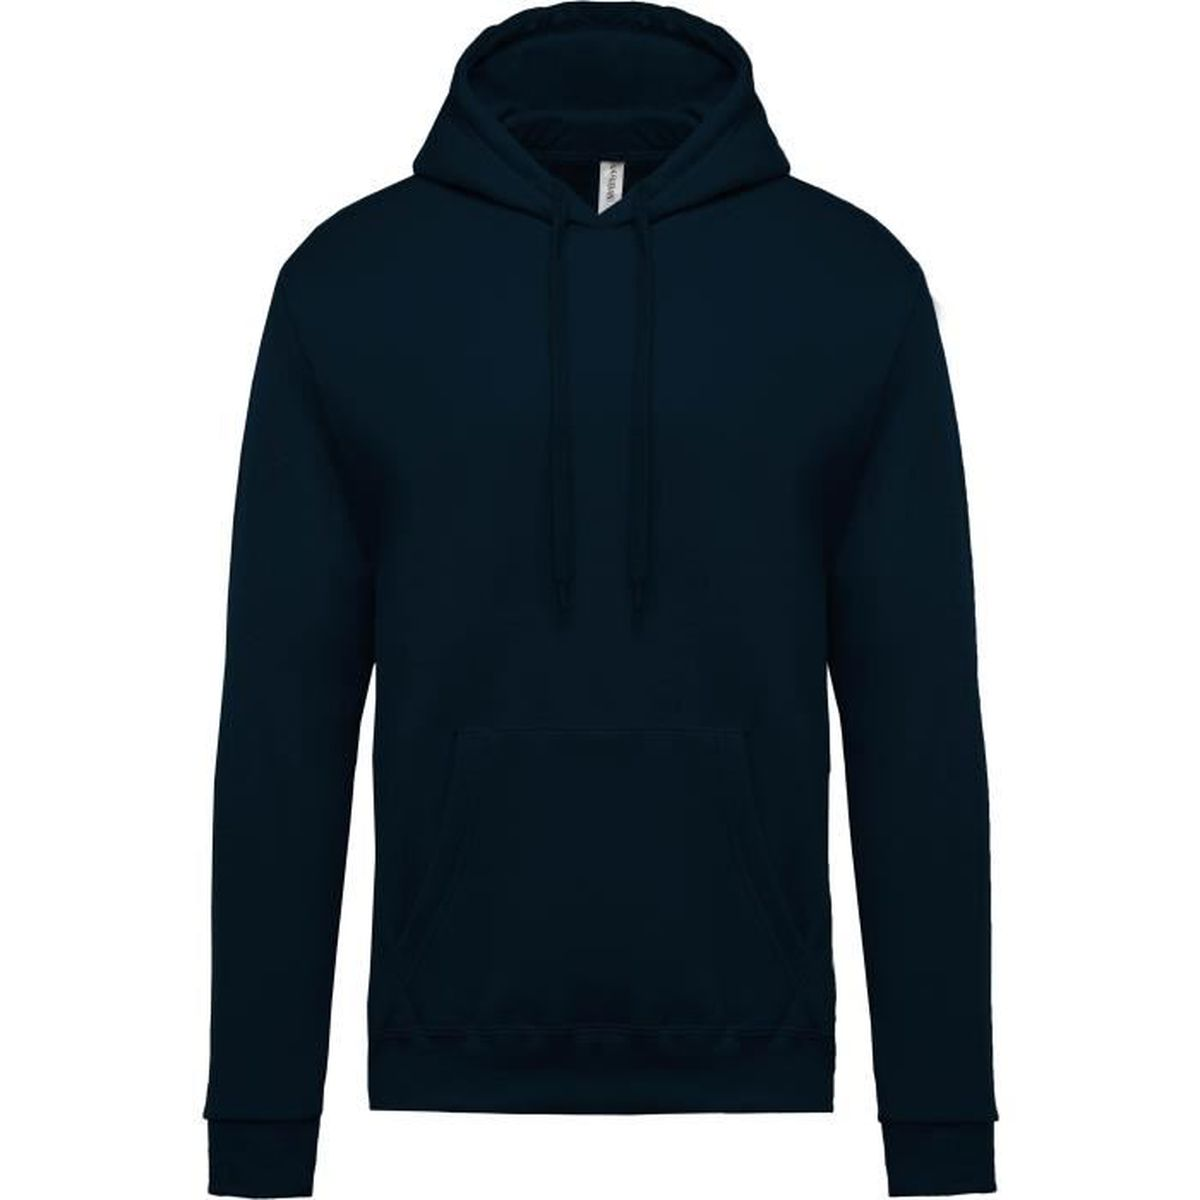 c84360e5671e Sweat-shirt capuche homme Orange Navy - Achat   Vente sweatshirt ...